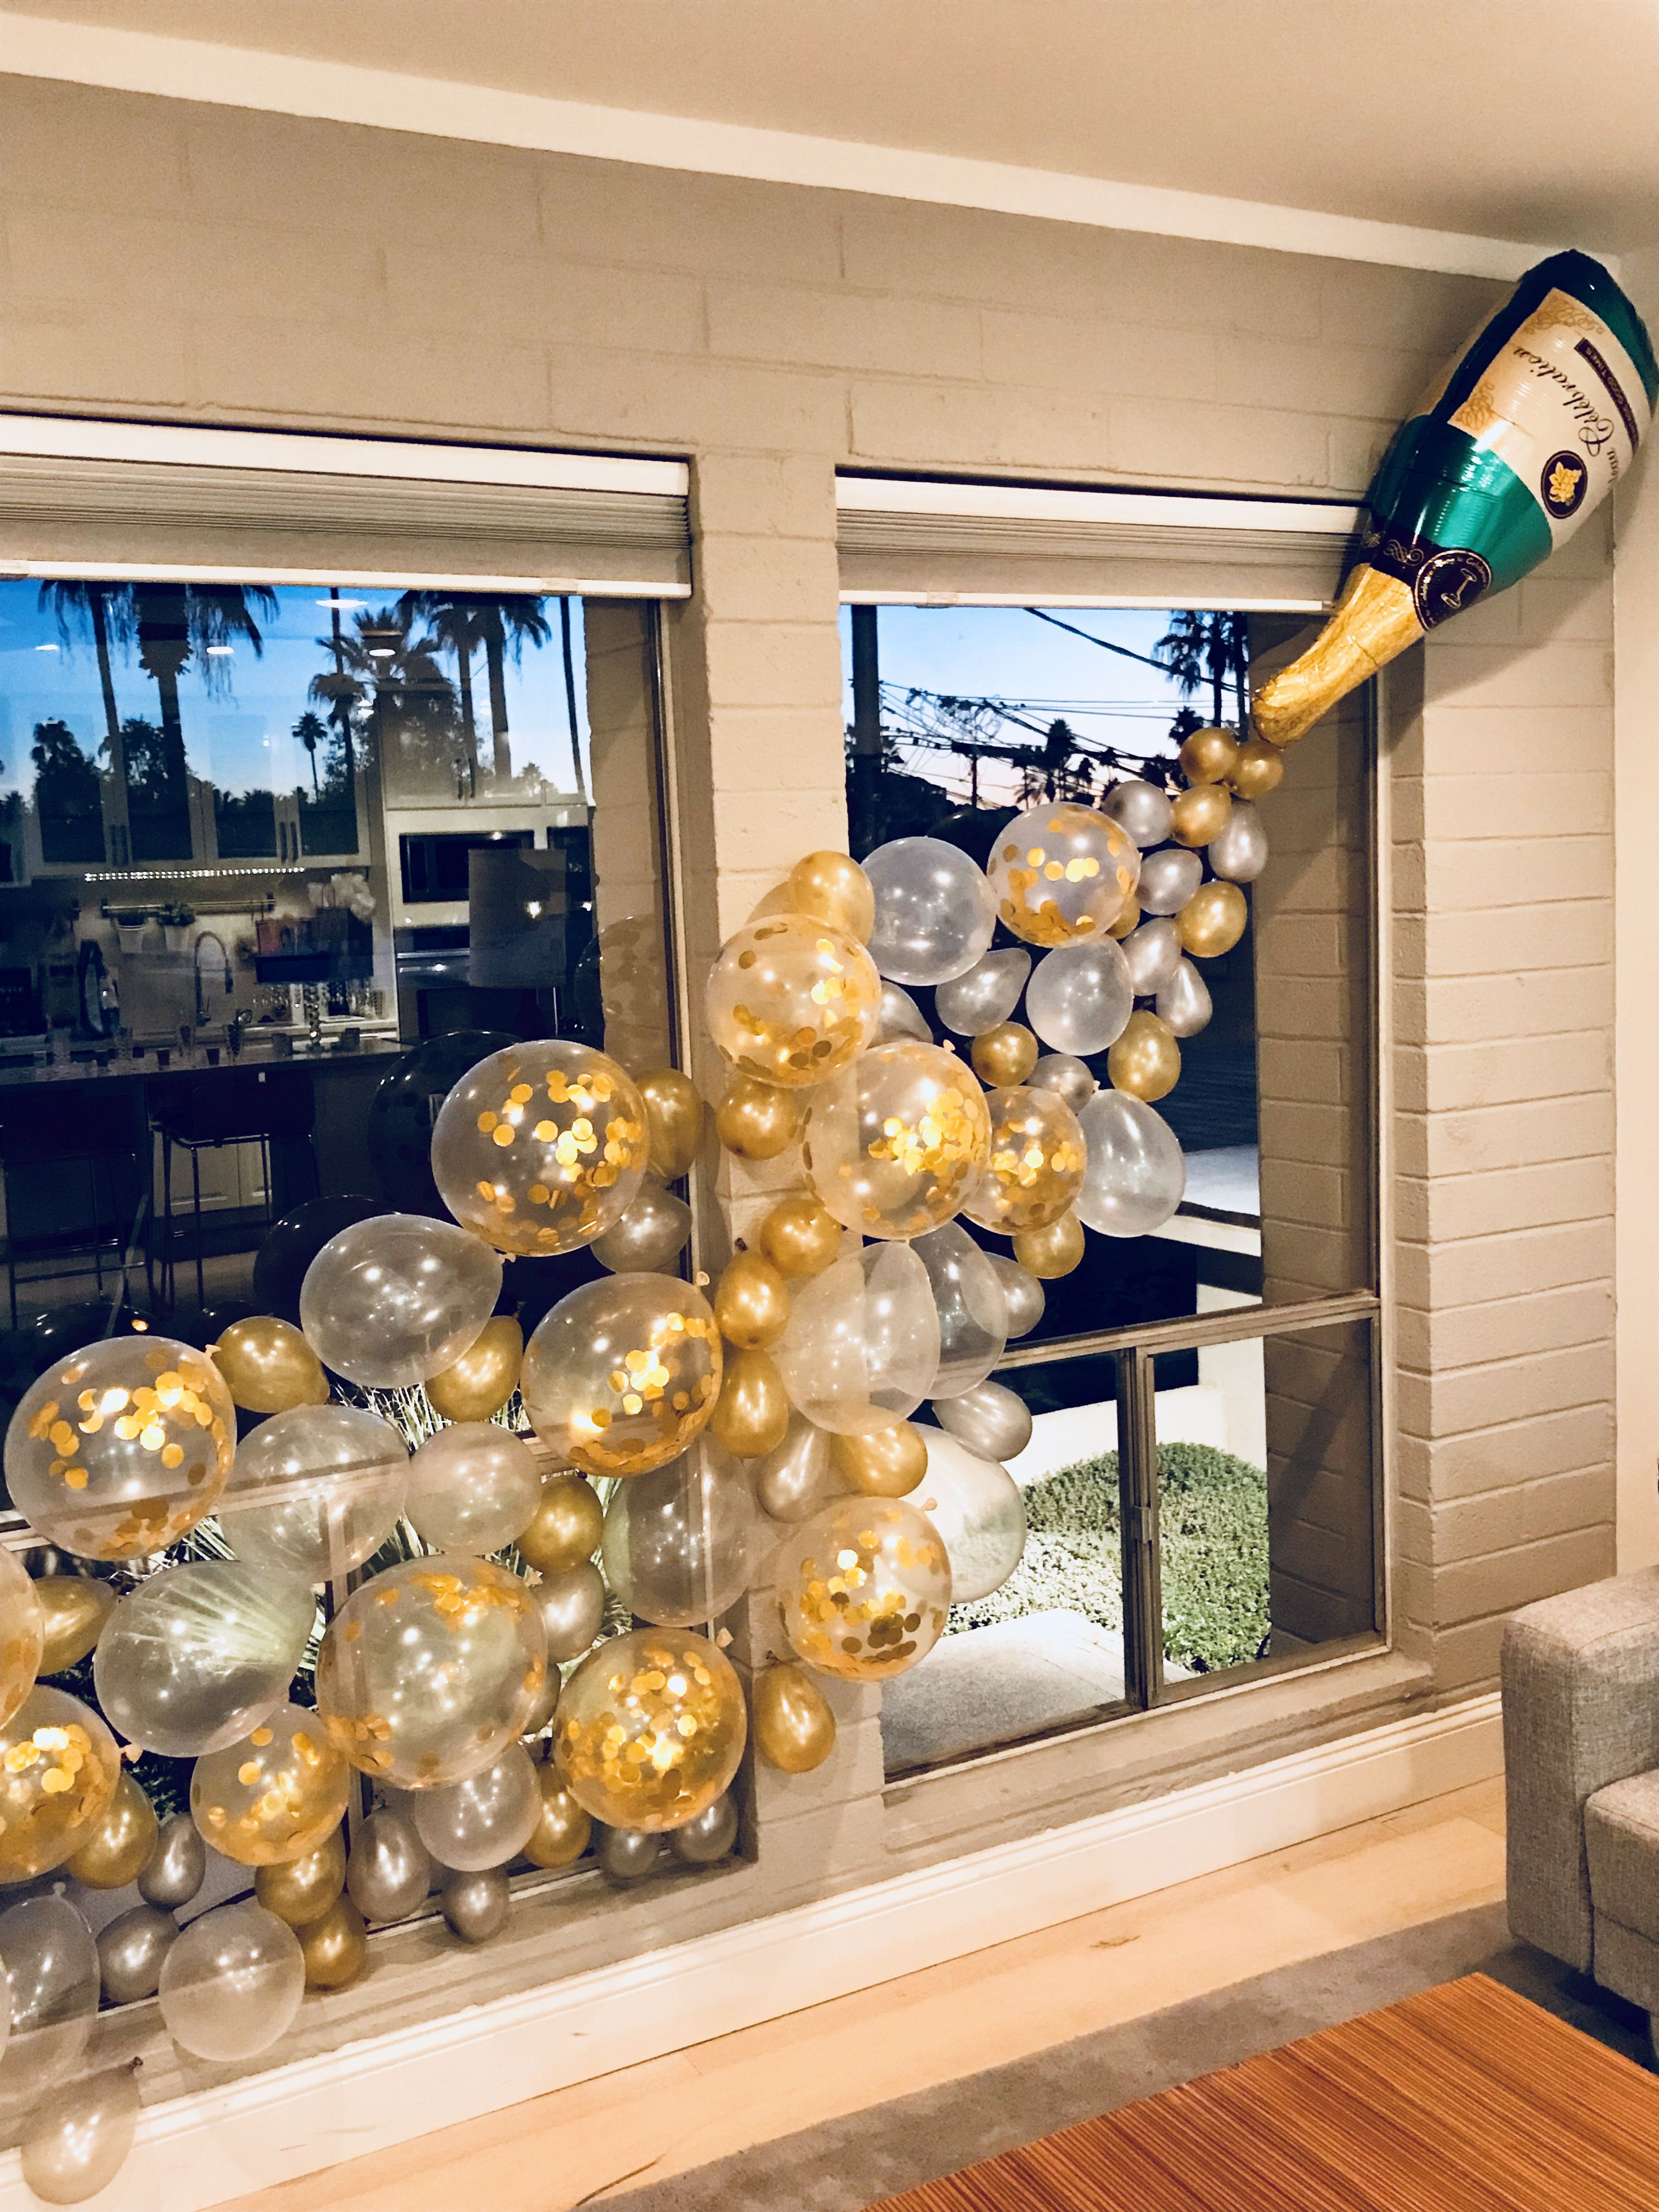 Champagne bottle balloon wall for bachelorette party. This